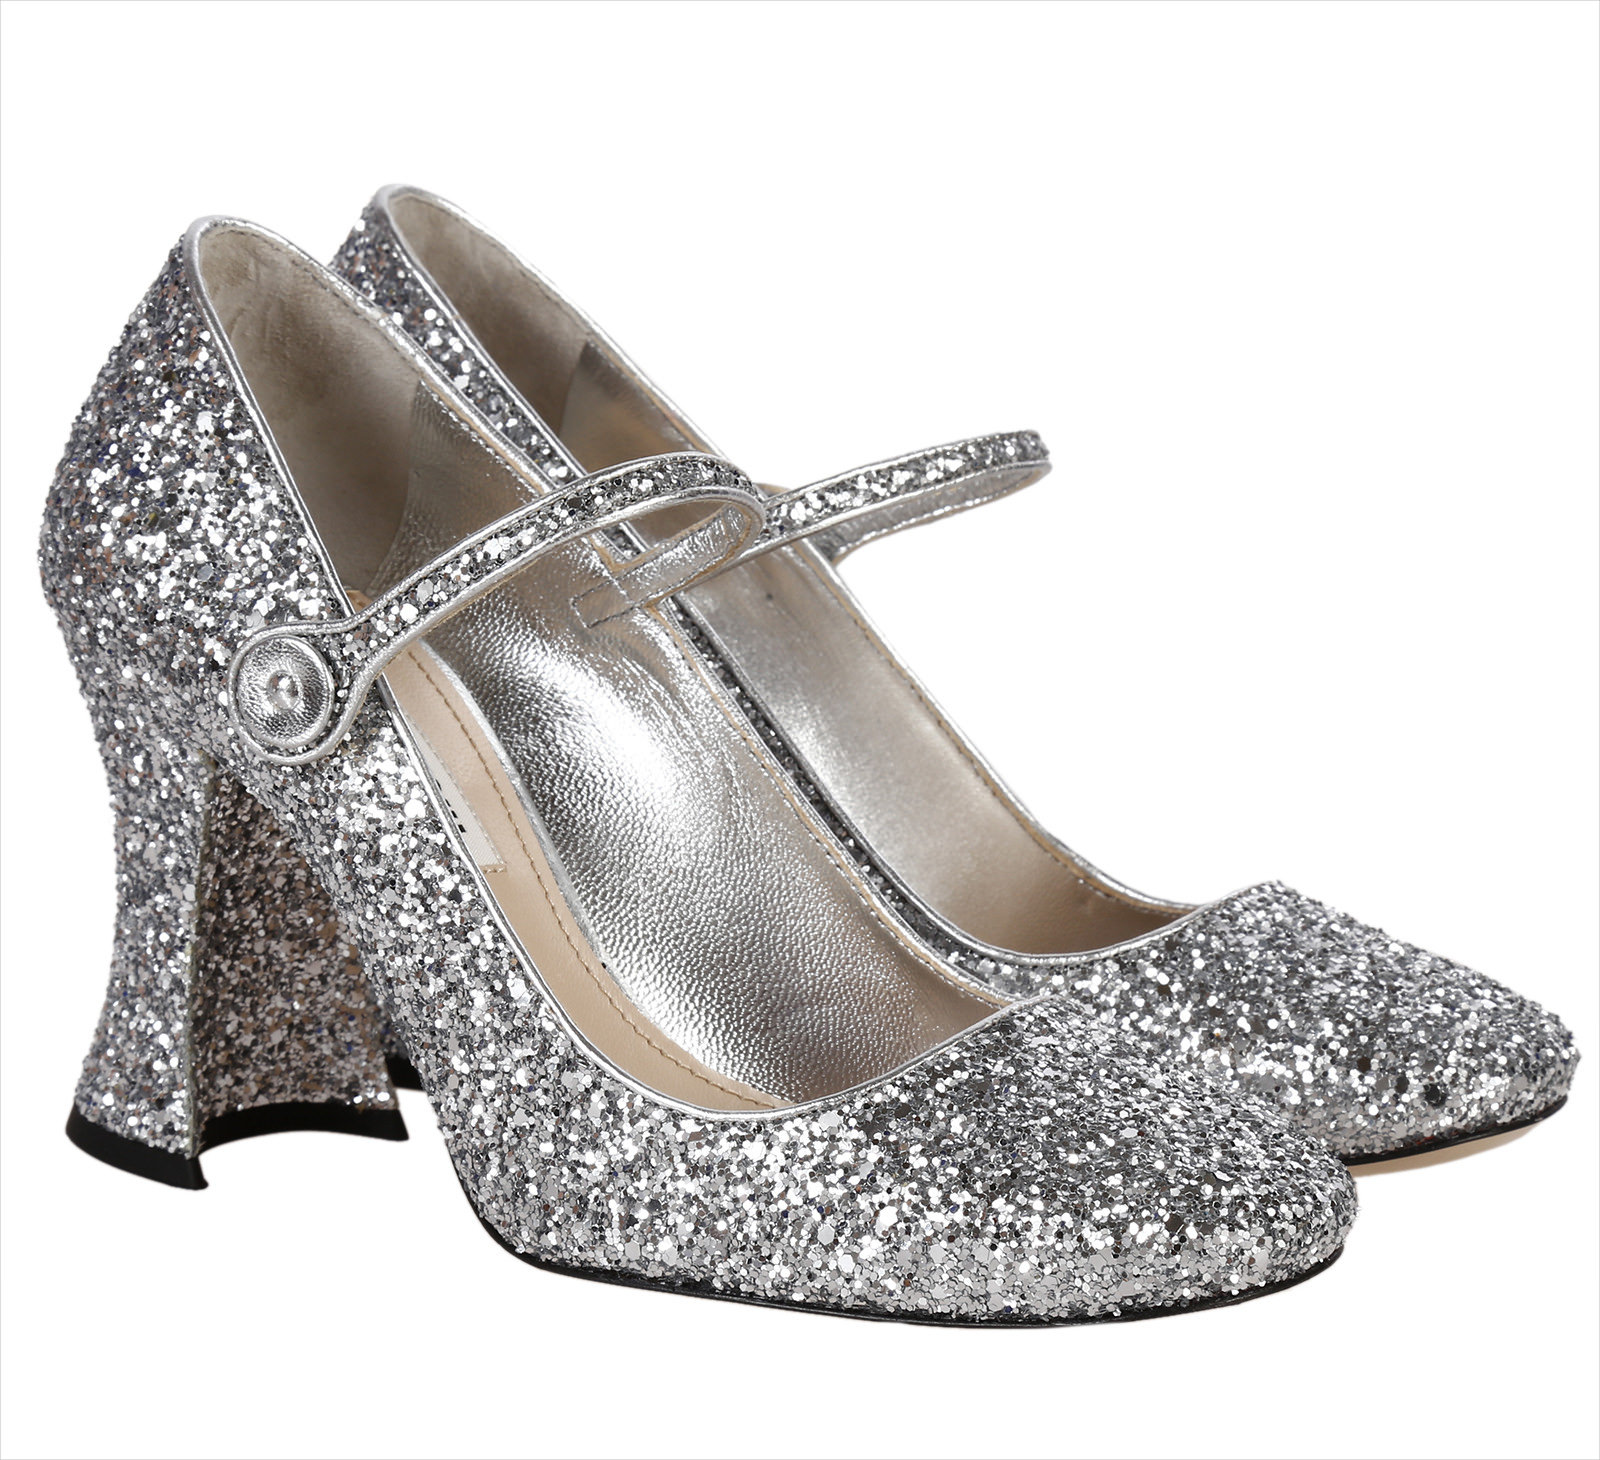 Fully Silver High Heel.